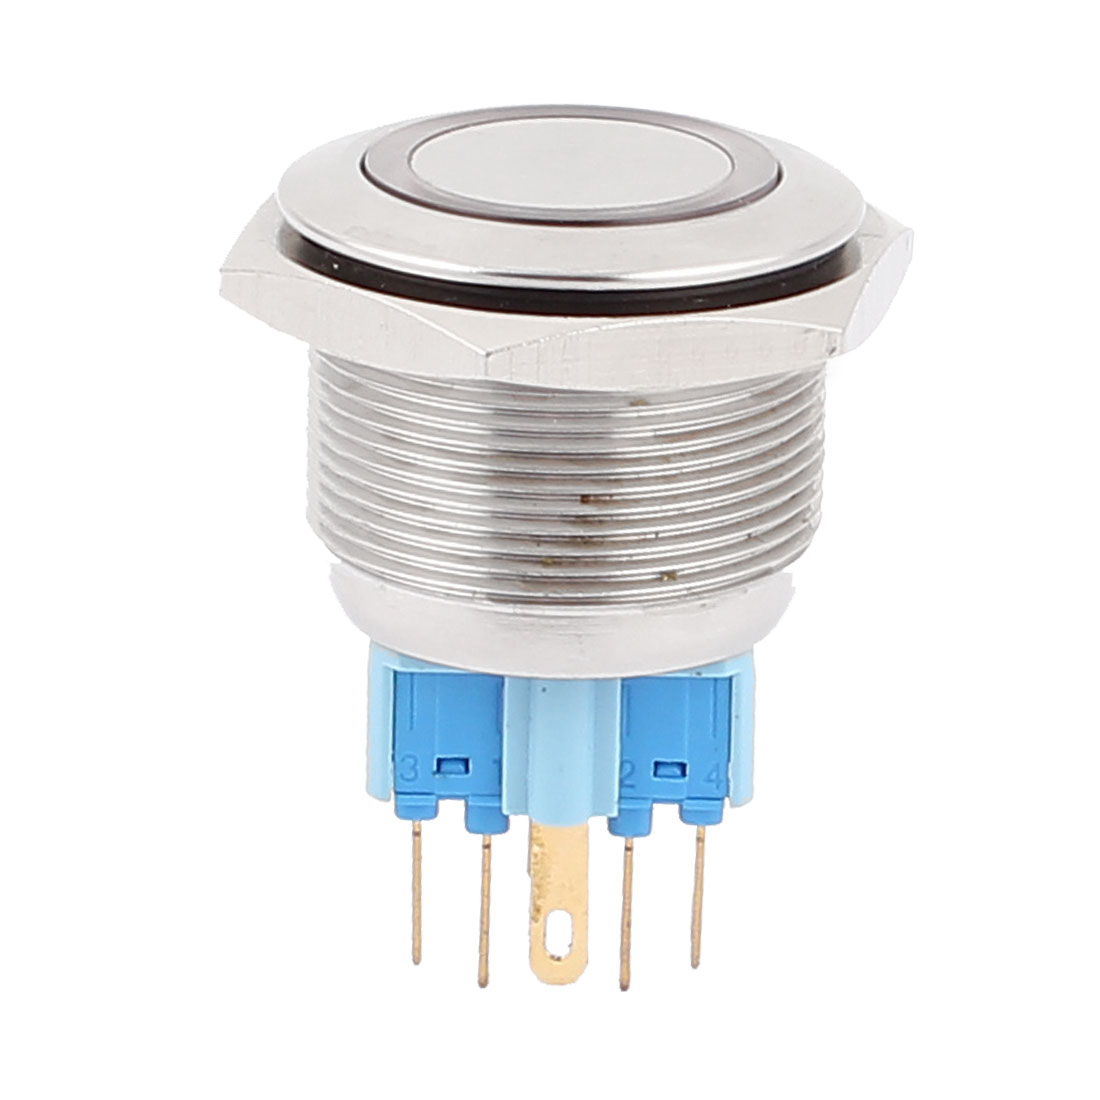 24V 25mm Dia Thread Red LED Angle Eyes Momentary Metal Pushbutton Switch